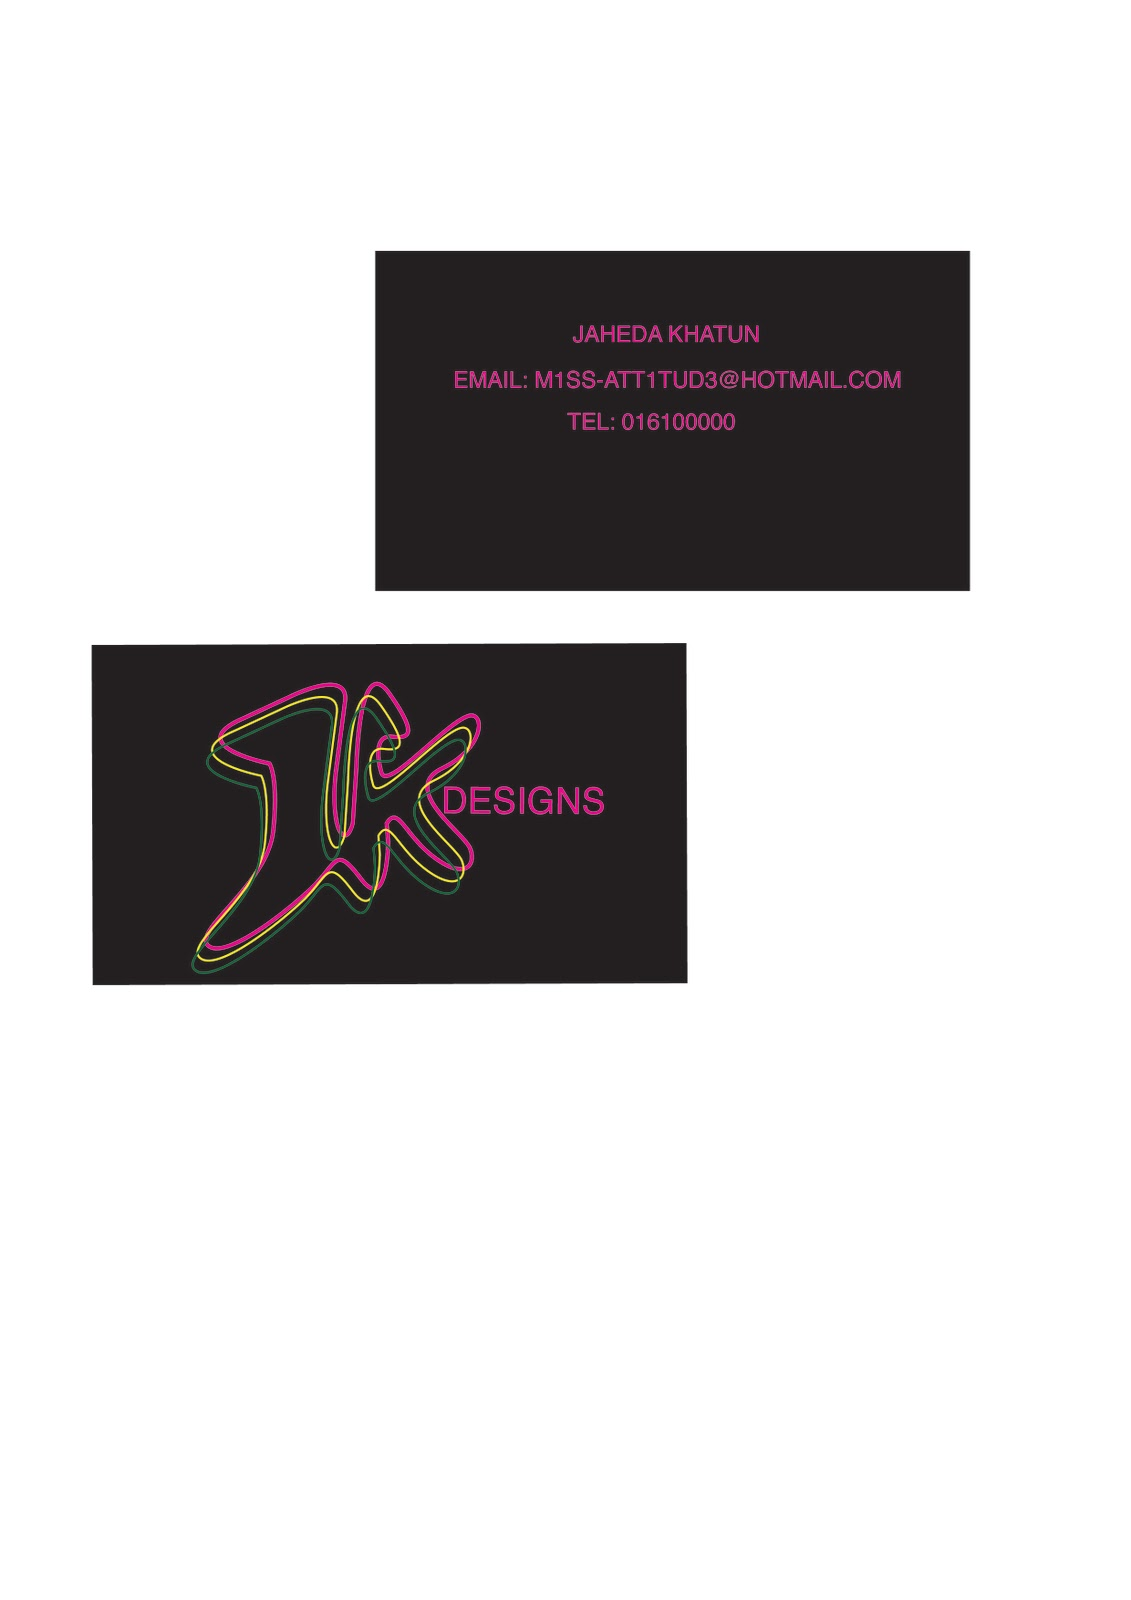 Editorial buisness card final design this is my final design for my business card i used adobe illustrator to designs this i have decided to use the color black for my business card this is colourmoves